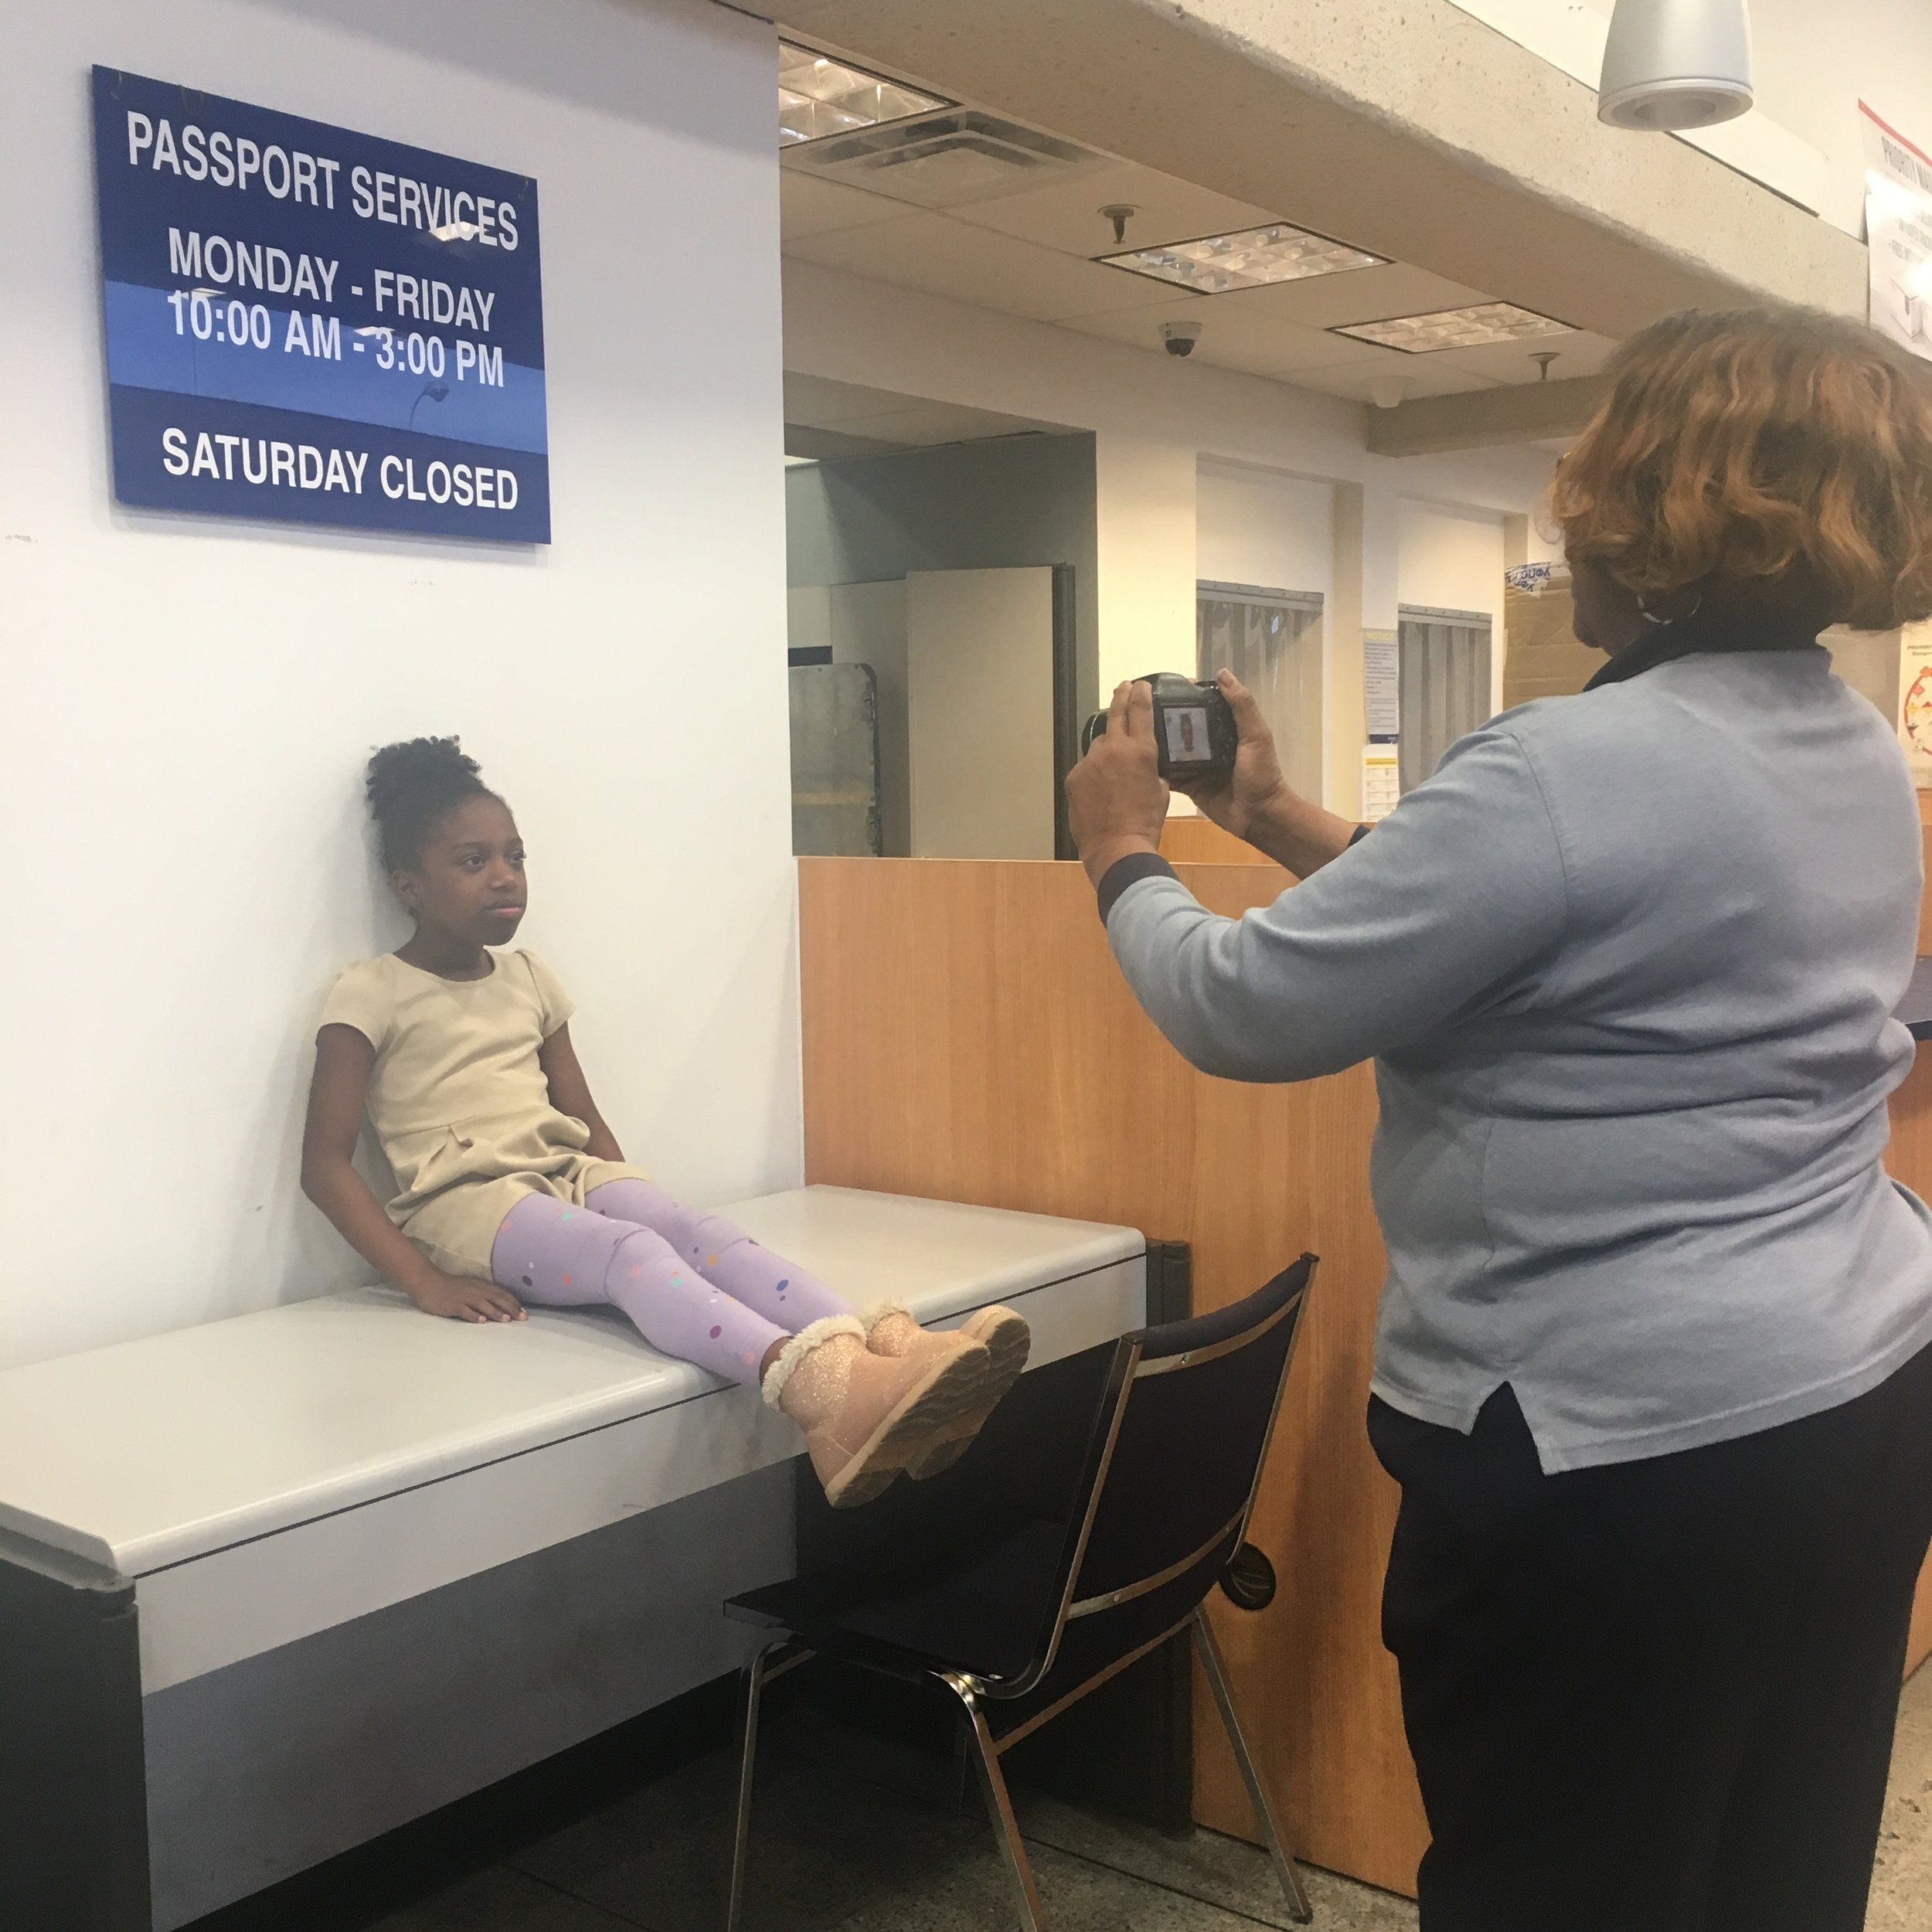 Andrea Fenise Memphis Fashion Blogger and Memphis Parenting Blogger shares process of getting passports